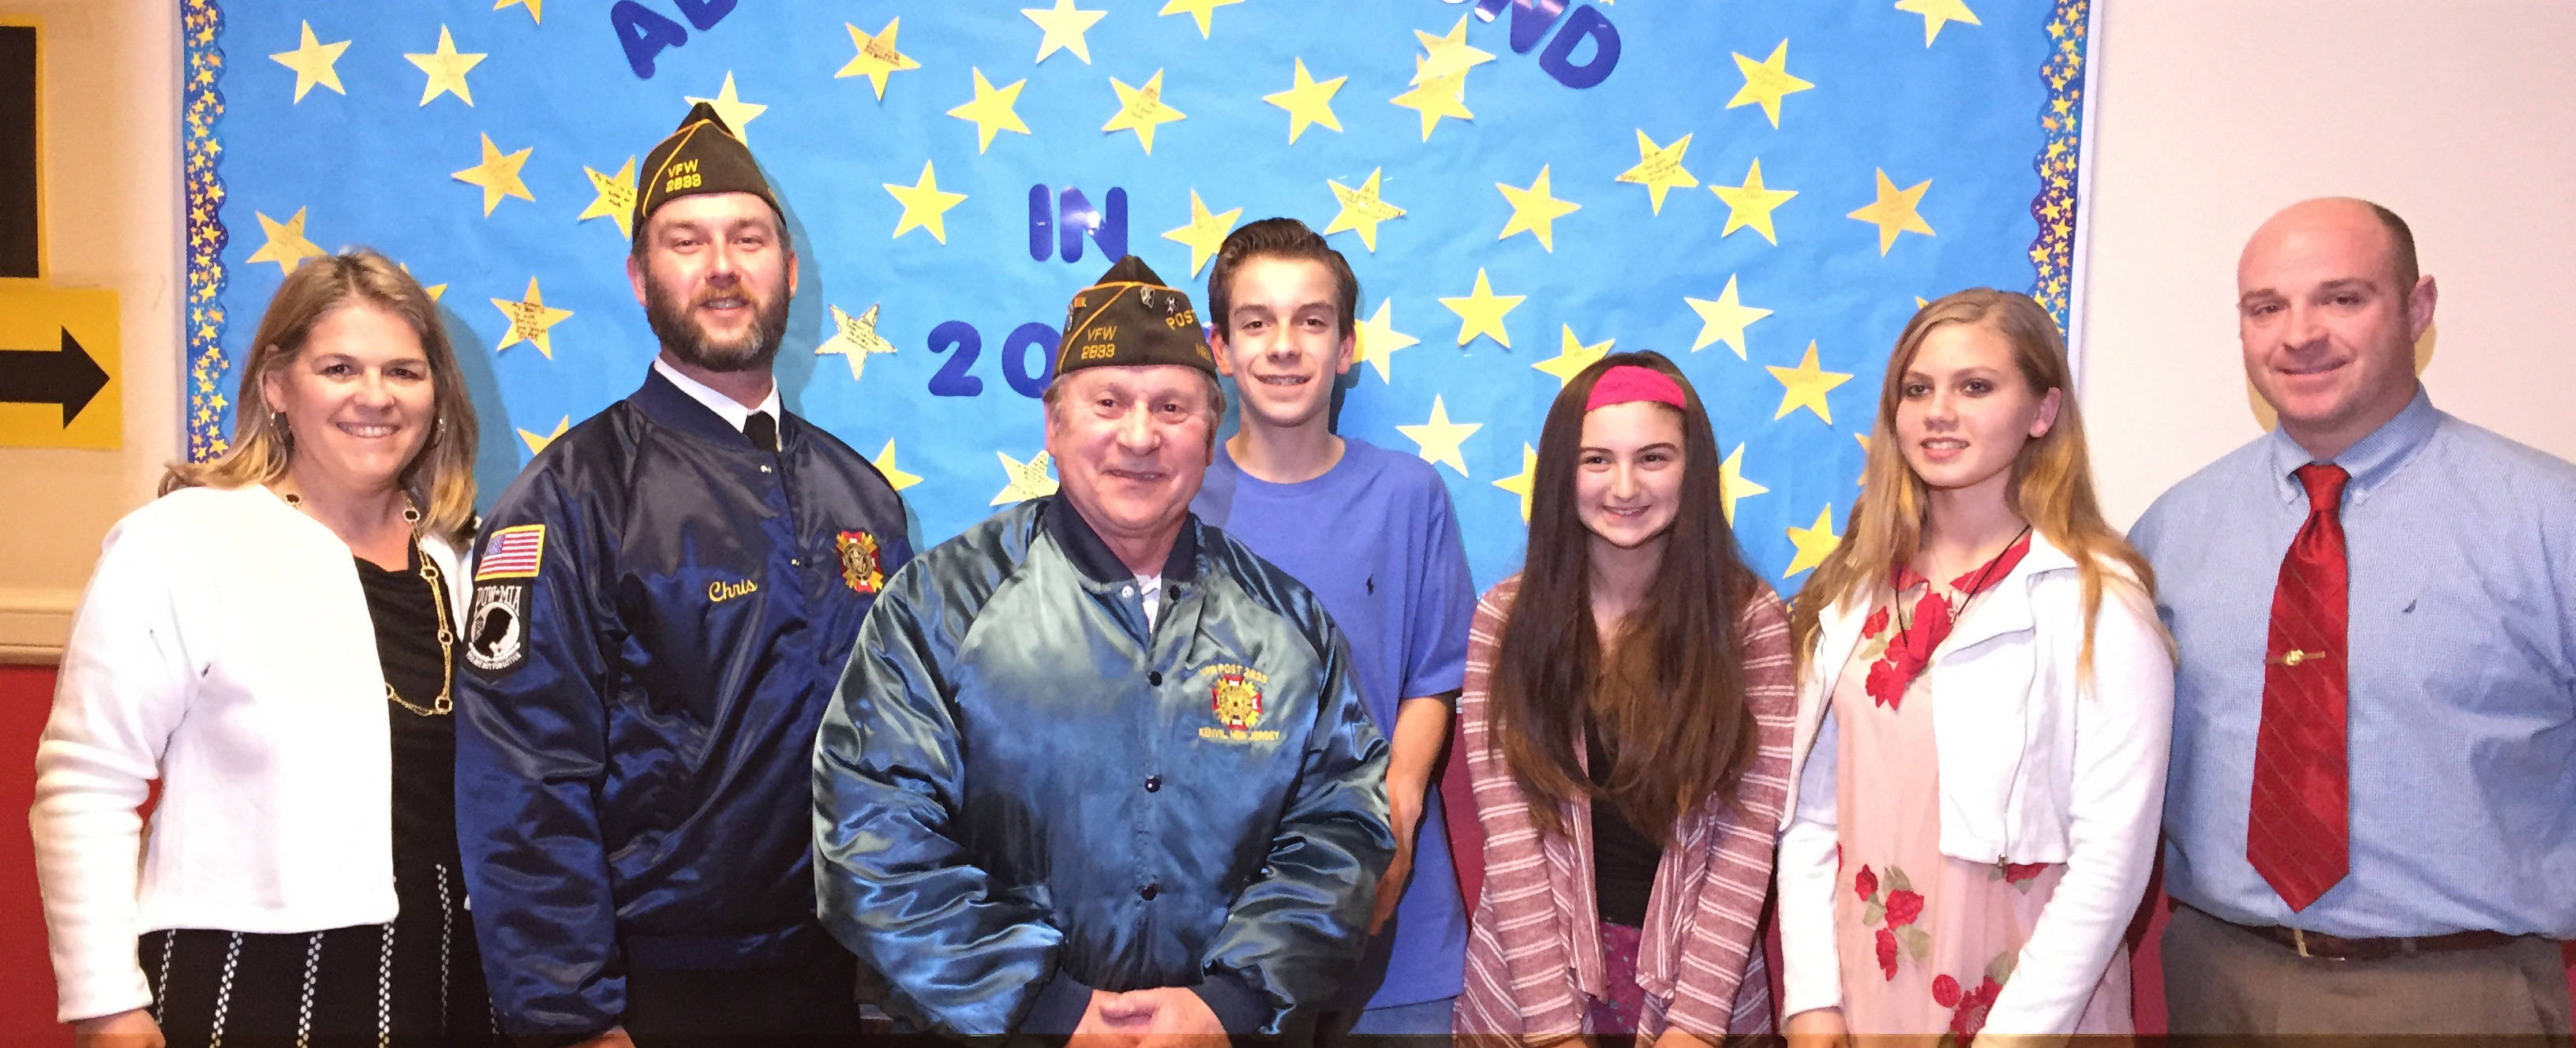 local vfw celebrates patriots pen and voice of democracy essay  7c009288c715d4d0917e ems patriots pen jpg